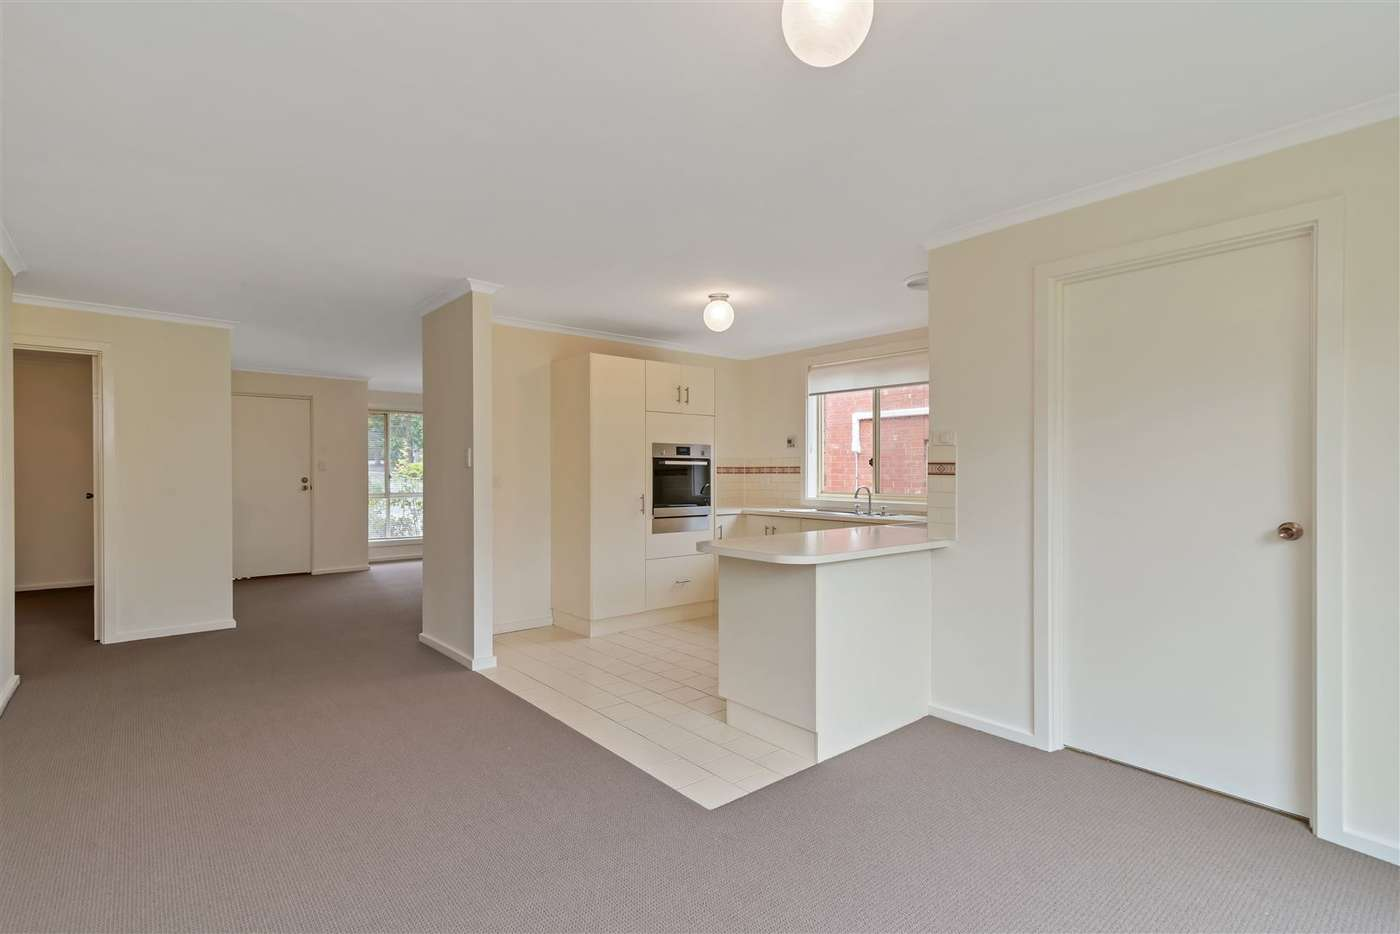 Sixth view of Homely unit listing, 6/3 Mulberry Court, Magill SA 5072